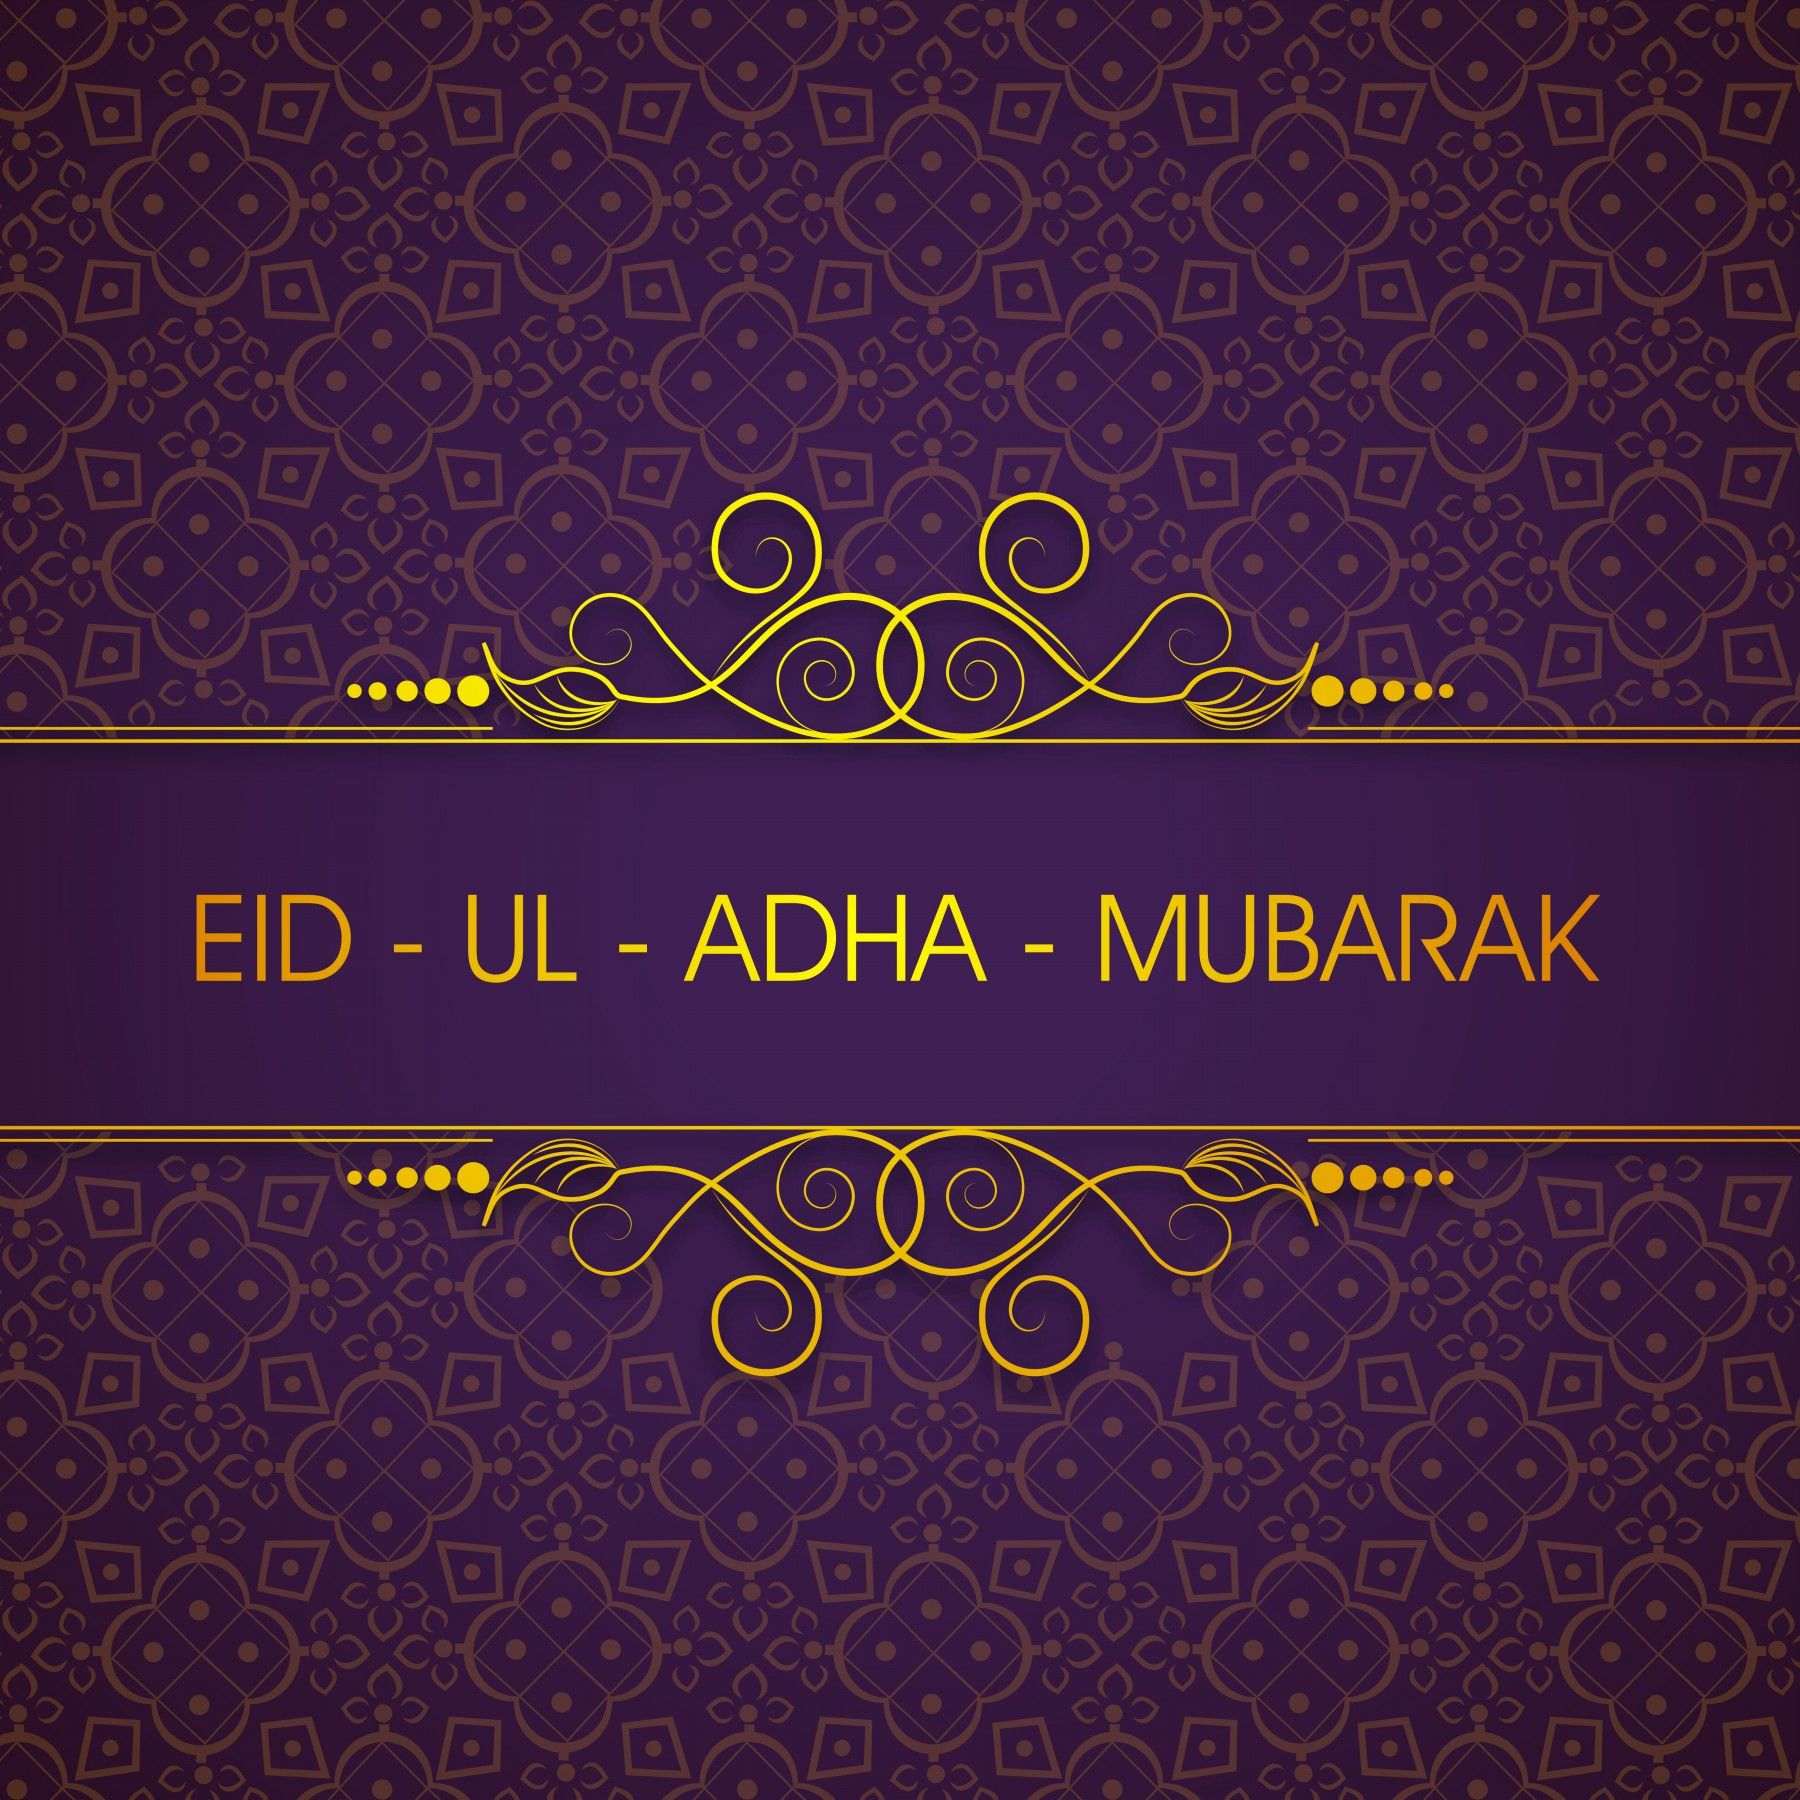 Images Backgrounds Cards Eid Mubarak Eid Al Adha Eid Al Fitr 22